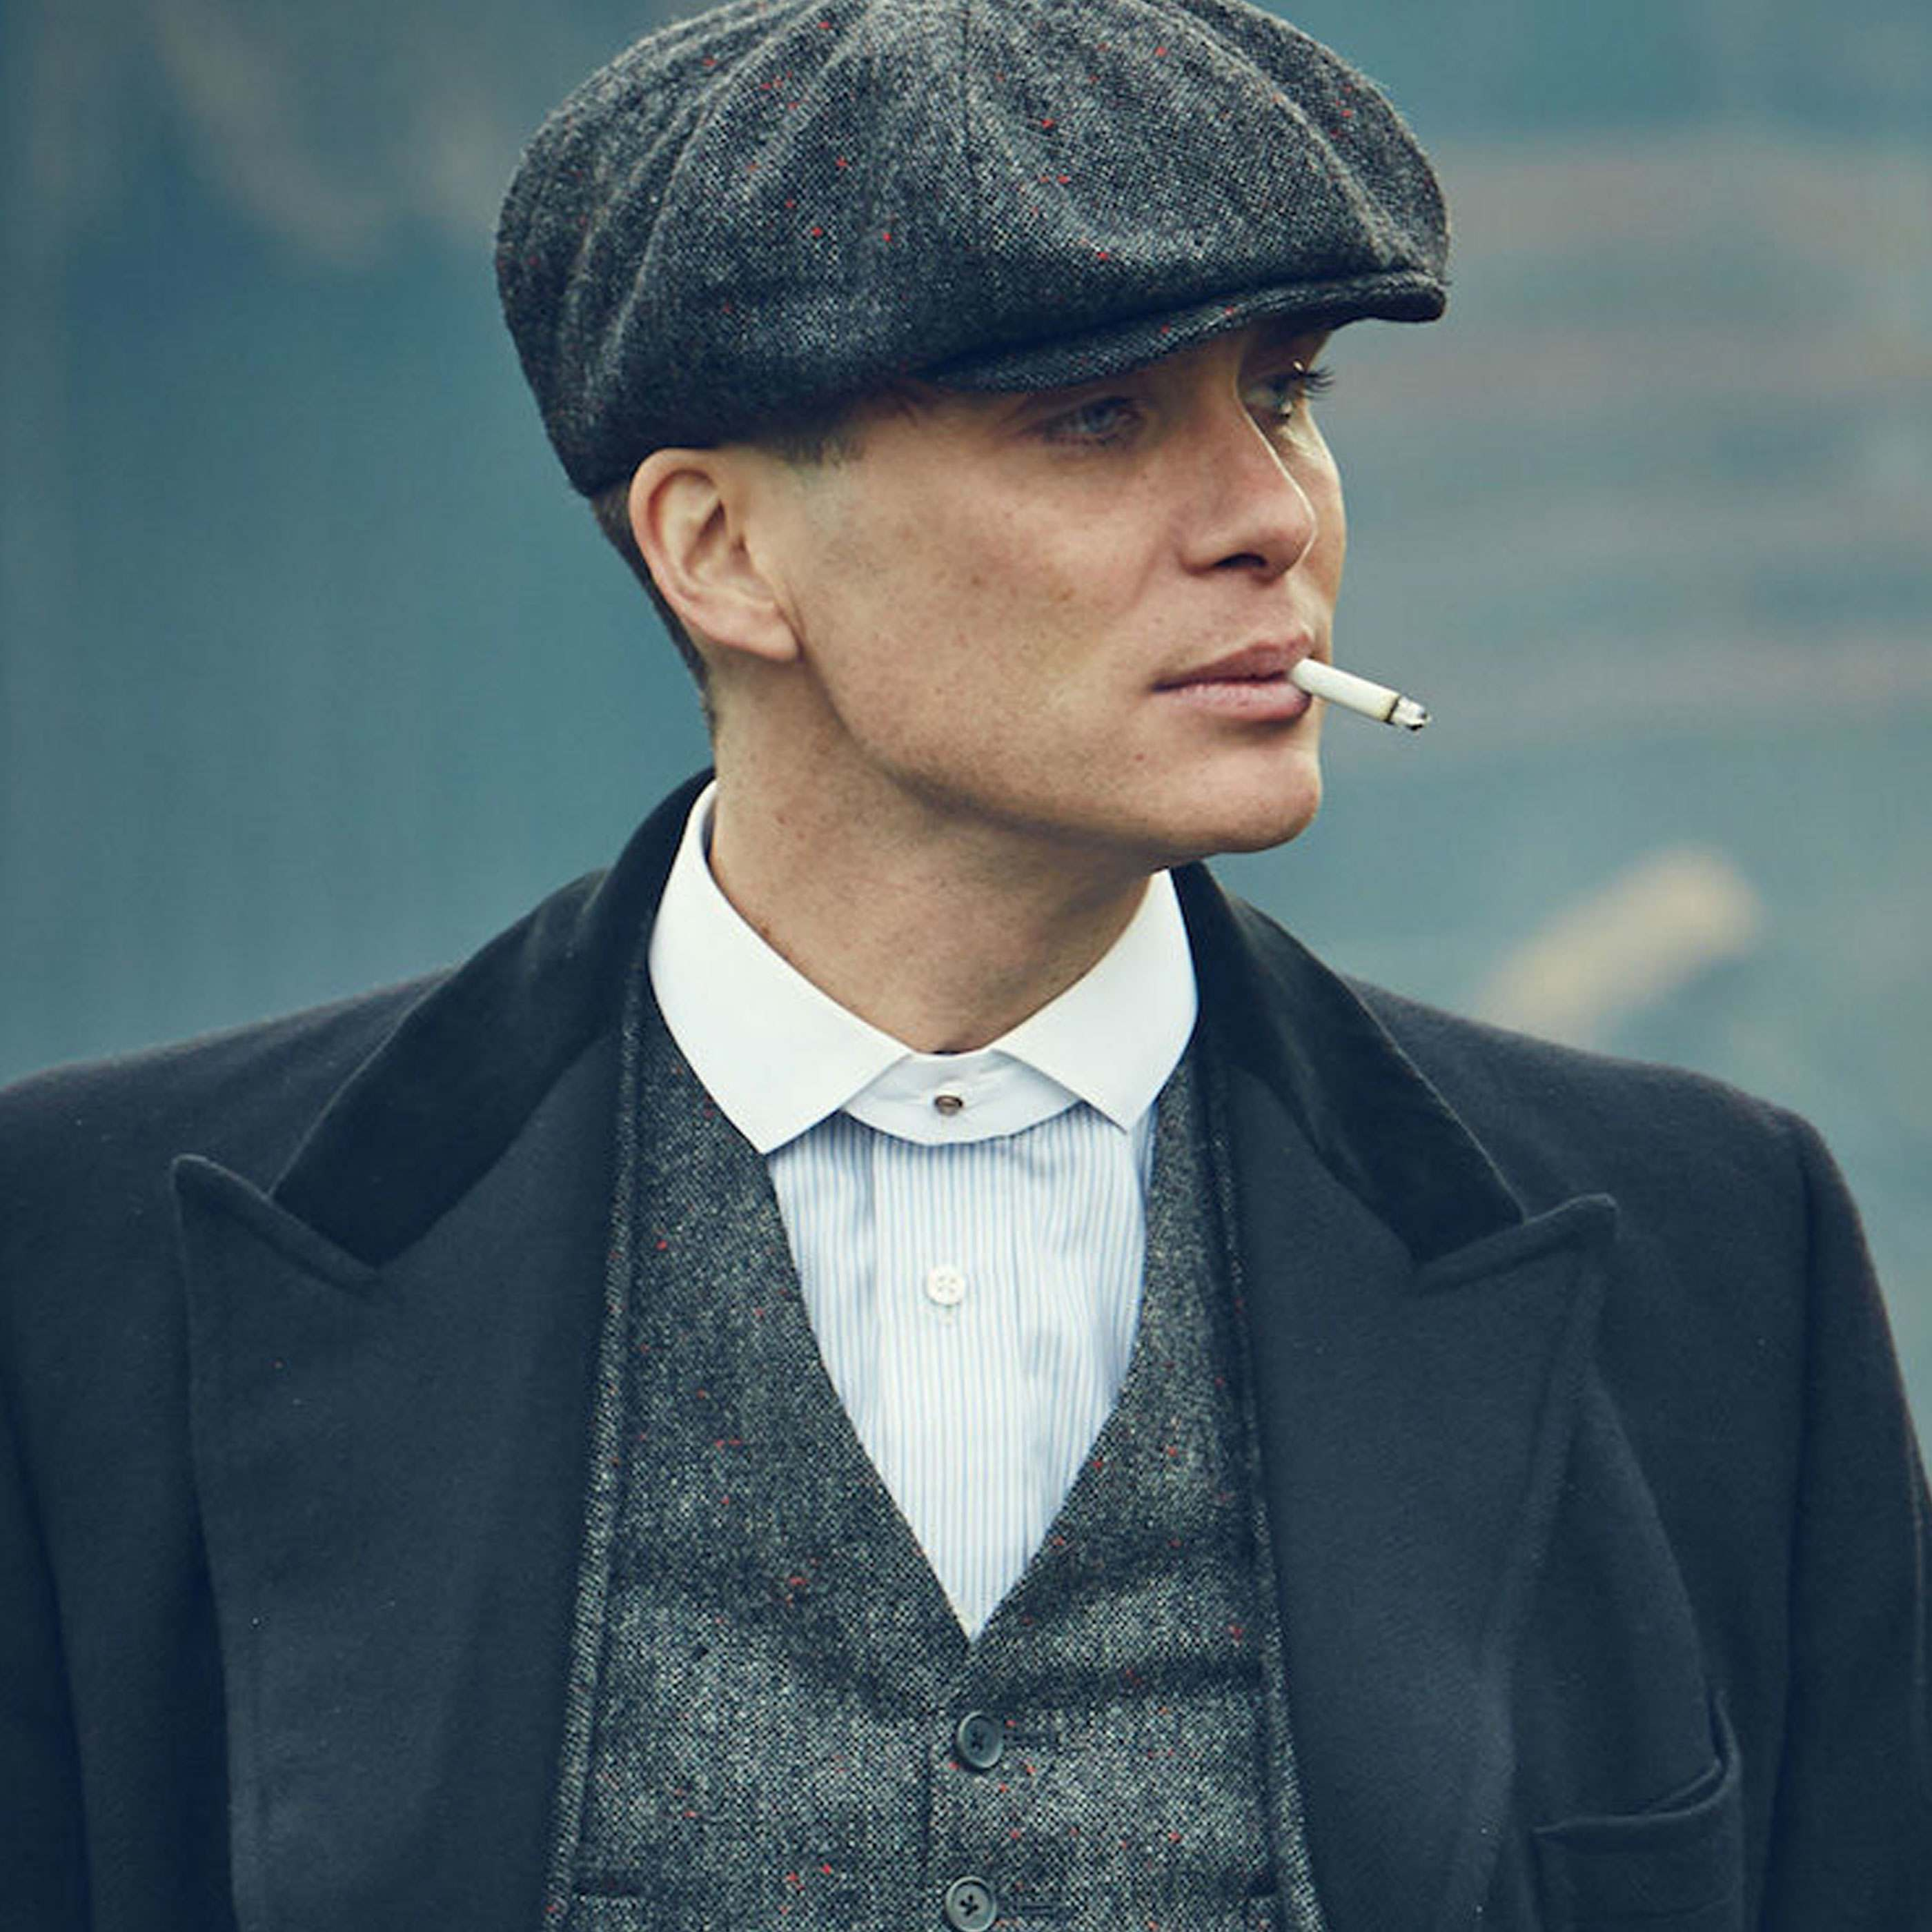 How to Dress Like A Peaky Blinder: The Modern-Day Peaky Blinder's Style Guide